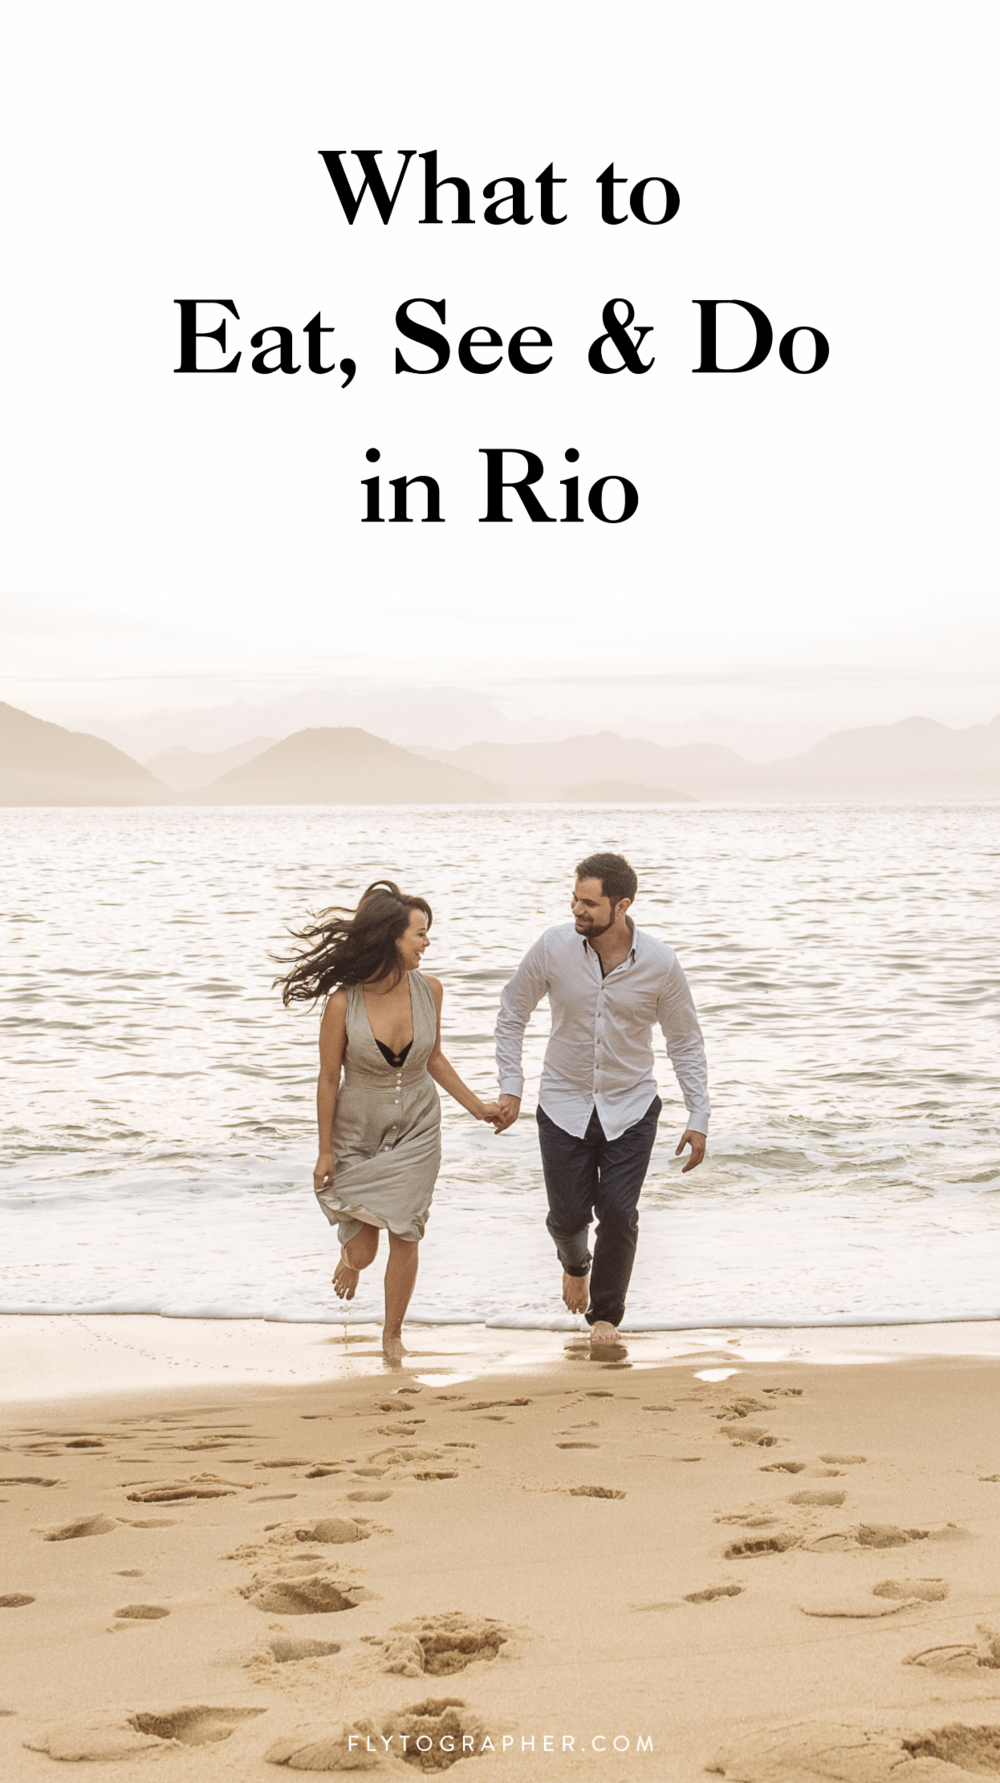 What to Eat, See & Do in Rio